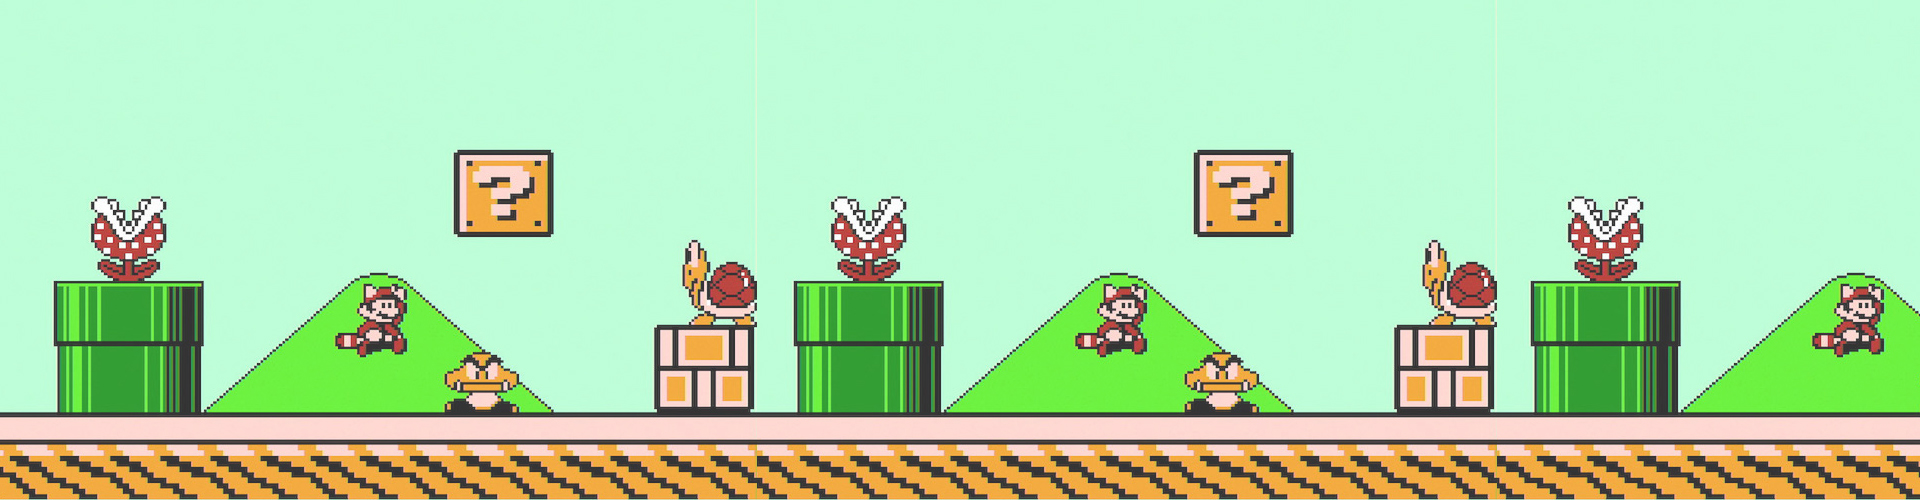 Mario bros 3 on nintendo